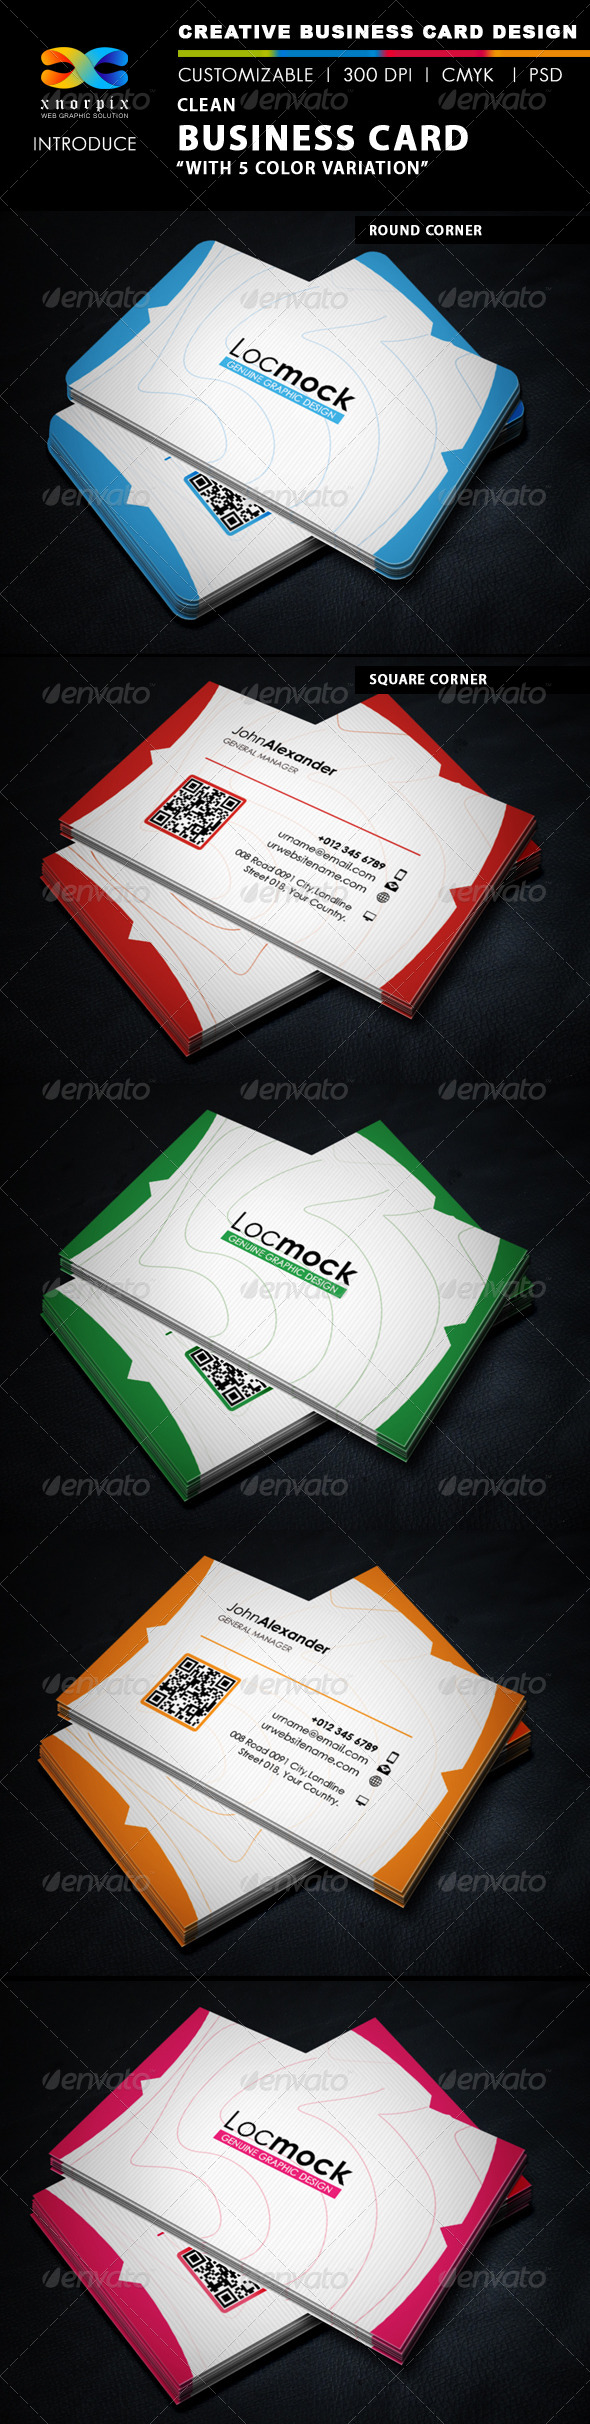 GraphicRiver Clean Business Card 5766771